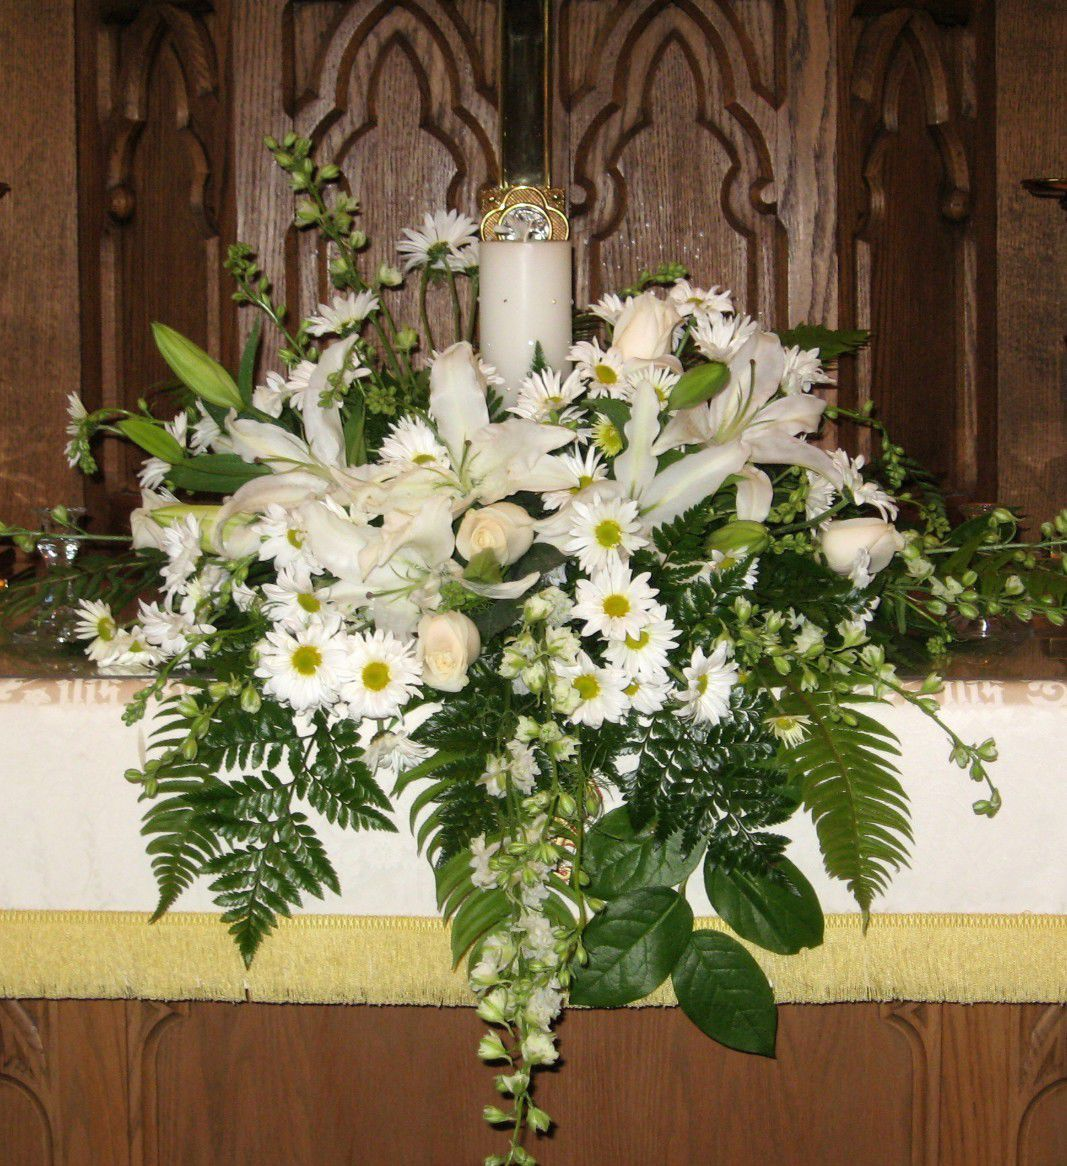 Church Altar Wedding Flower Arrangements: Unity Candle Altar Arrangement